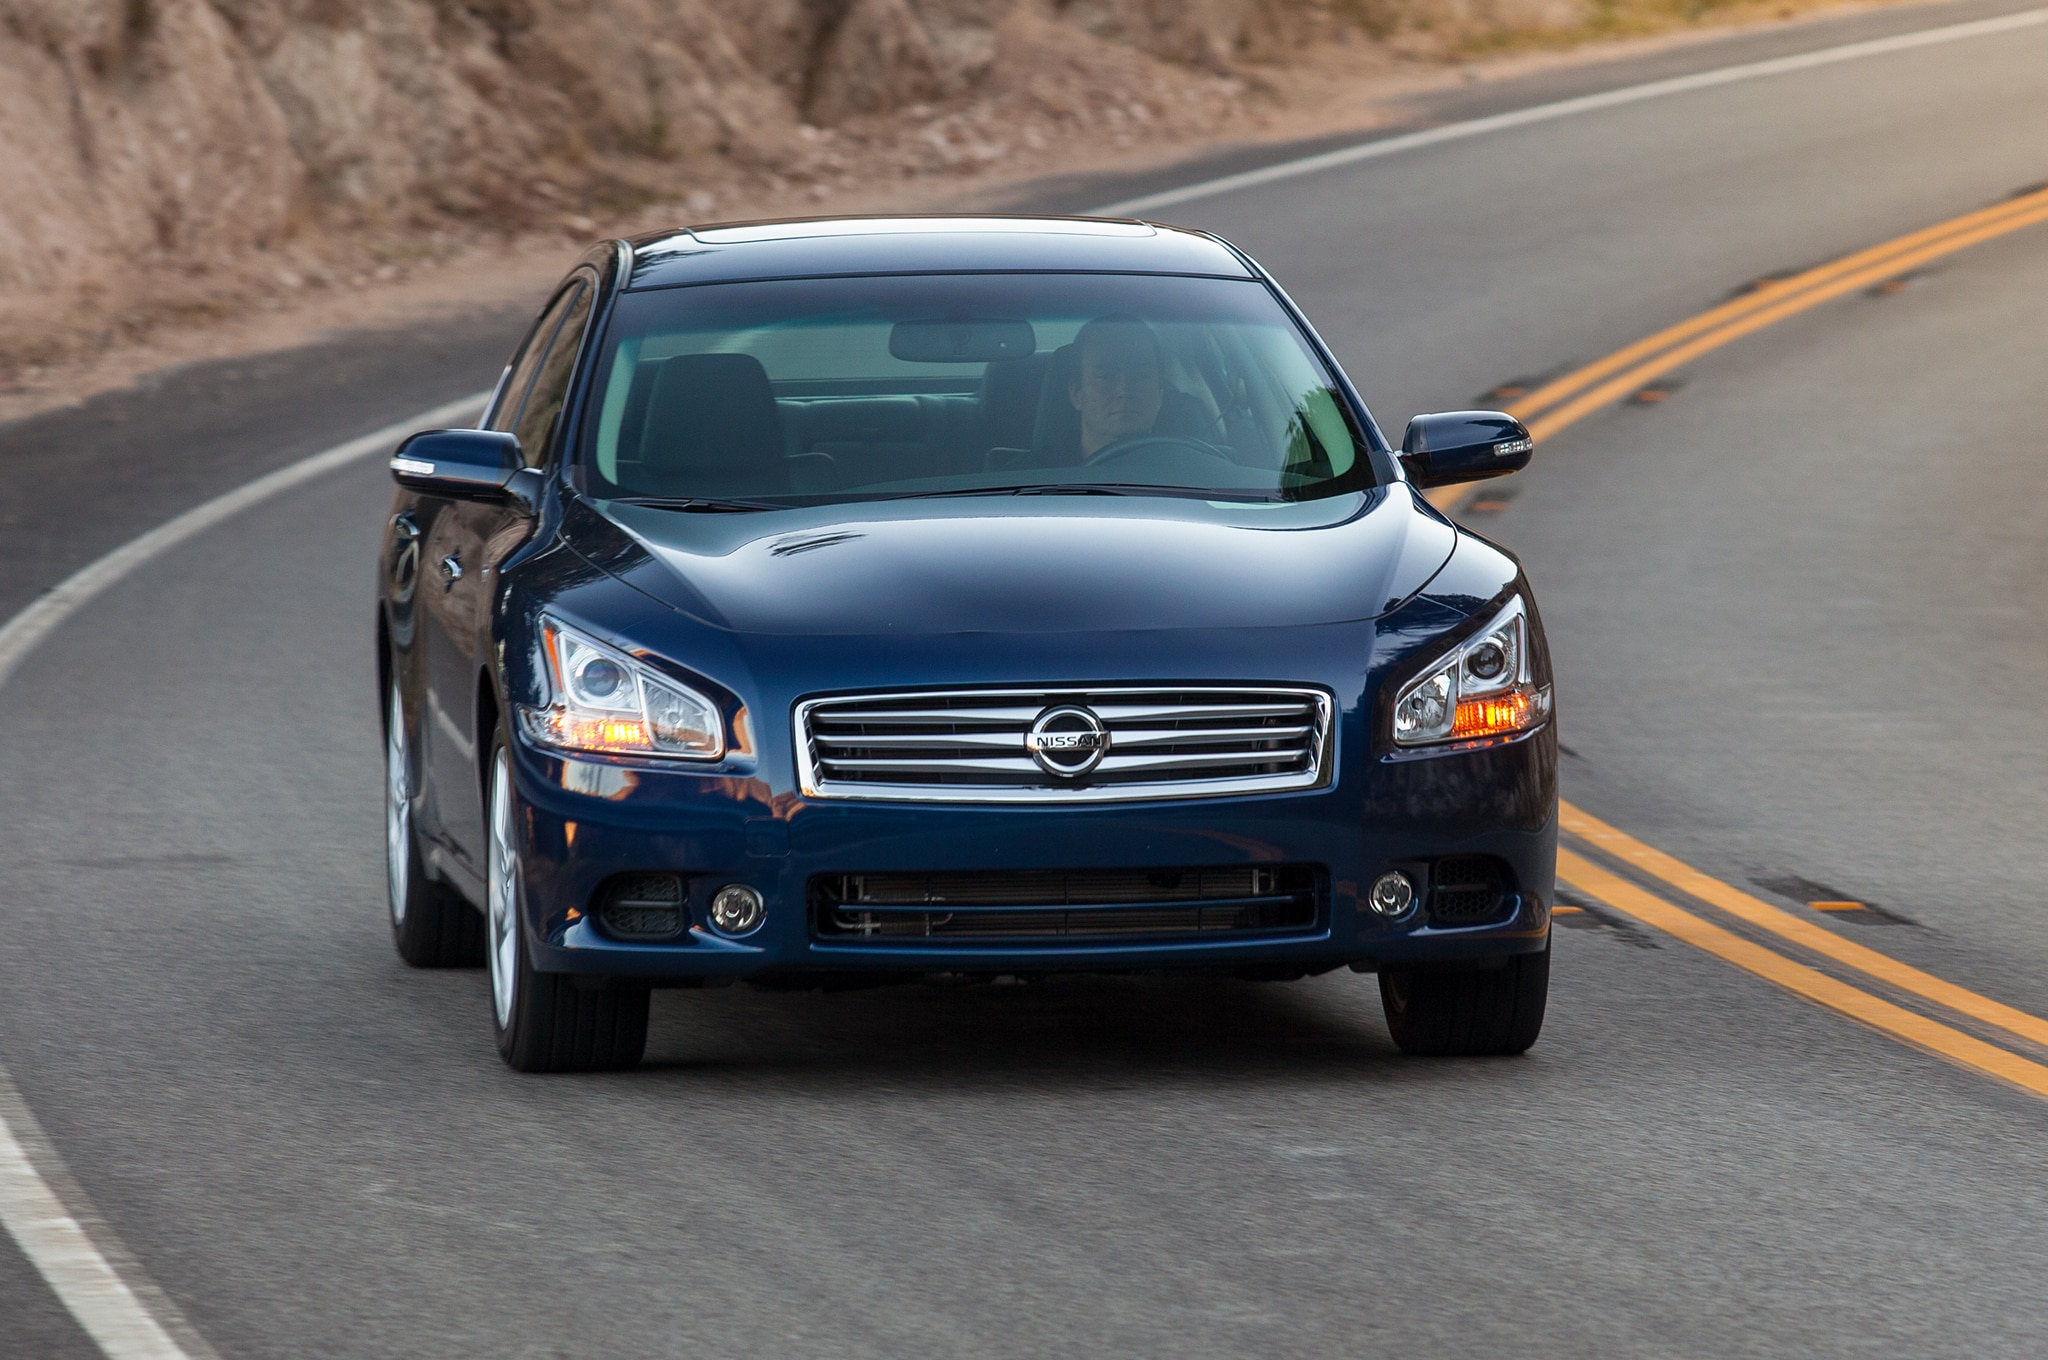 2014 nissan maxima priced at 31810 joseph capparella vanachro Image collections